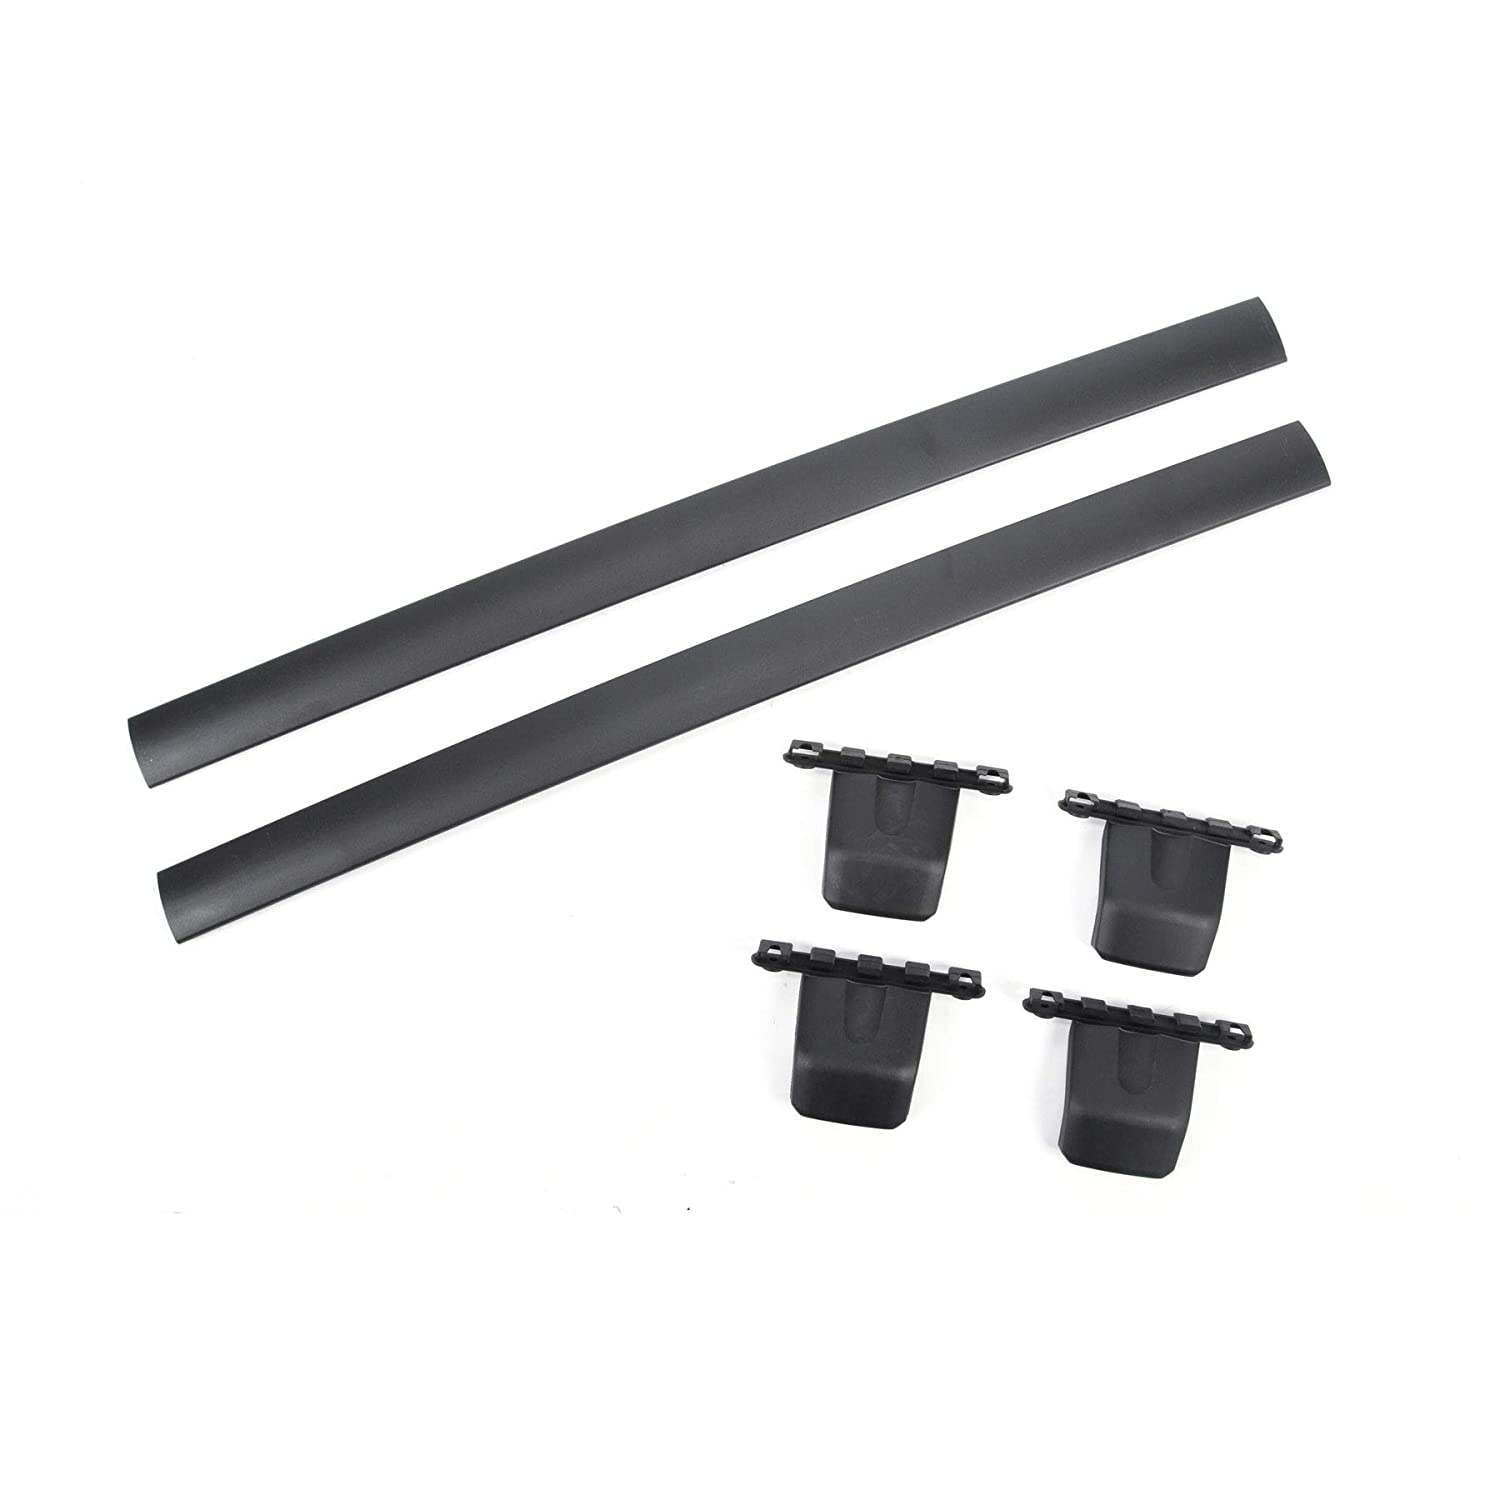 Brackets Mounting Hardwares Fit 09-15 Honda Pilot VIOJI 2pcs Black Aircraft Aluminum Roof Rack Cross Bars